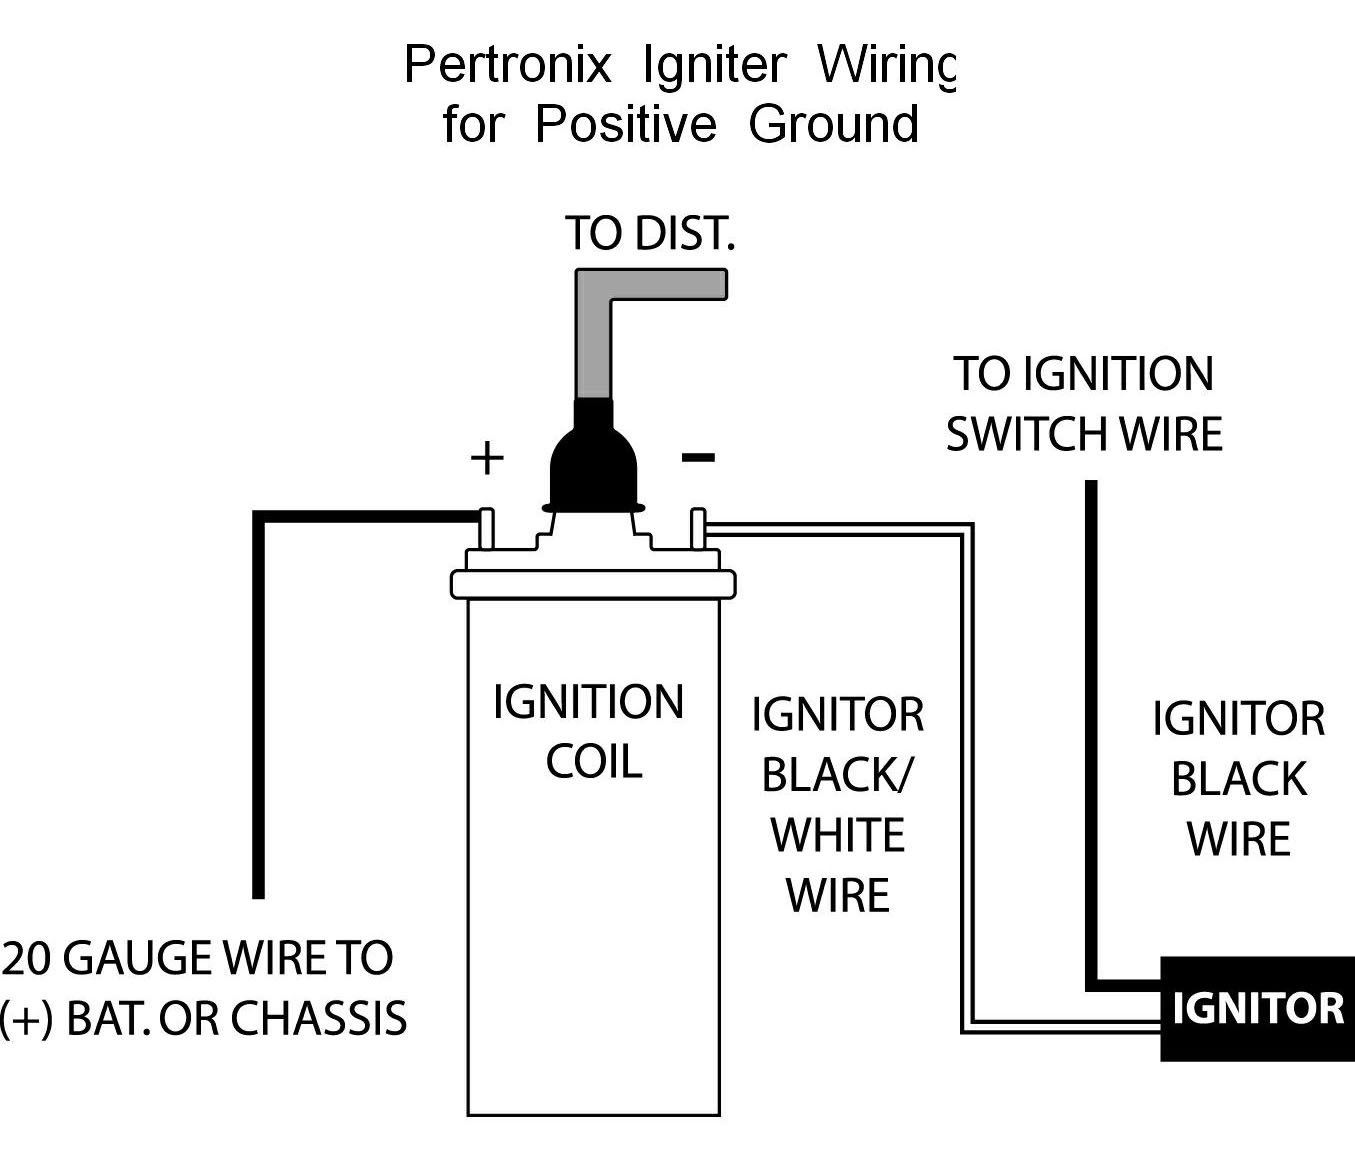 Ignition Coil Wiring Diagram Data Msd Hei Auto Simple For